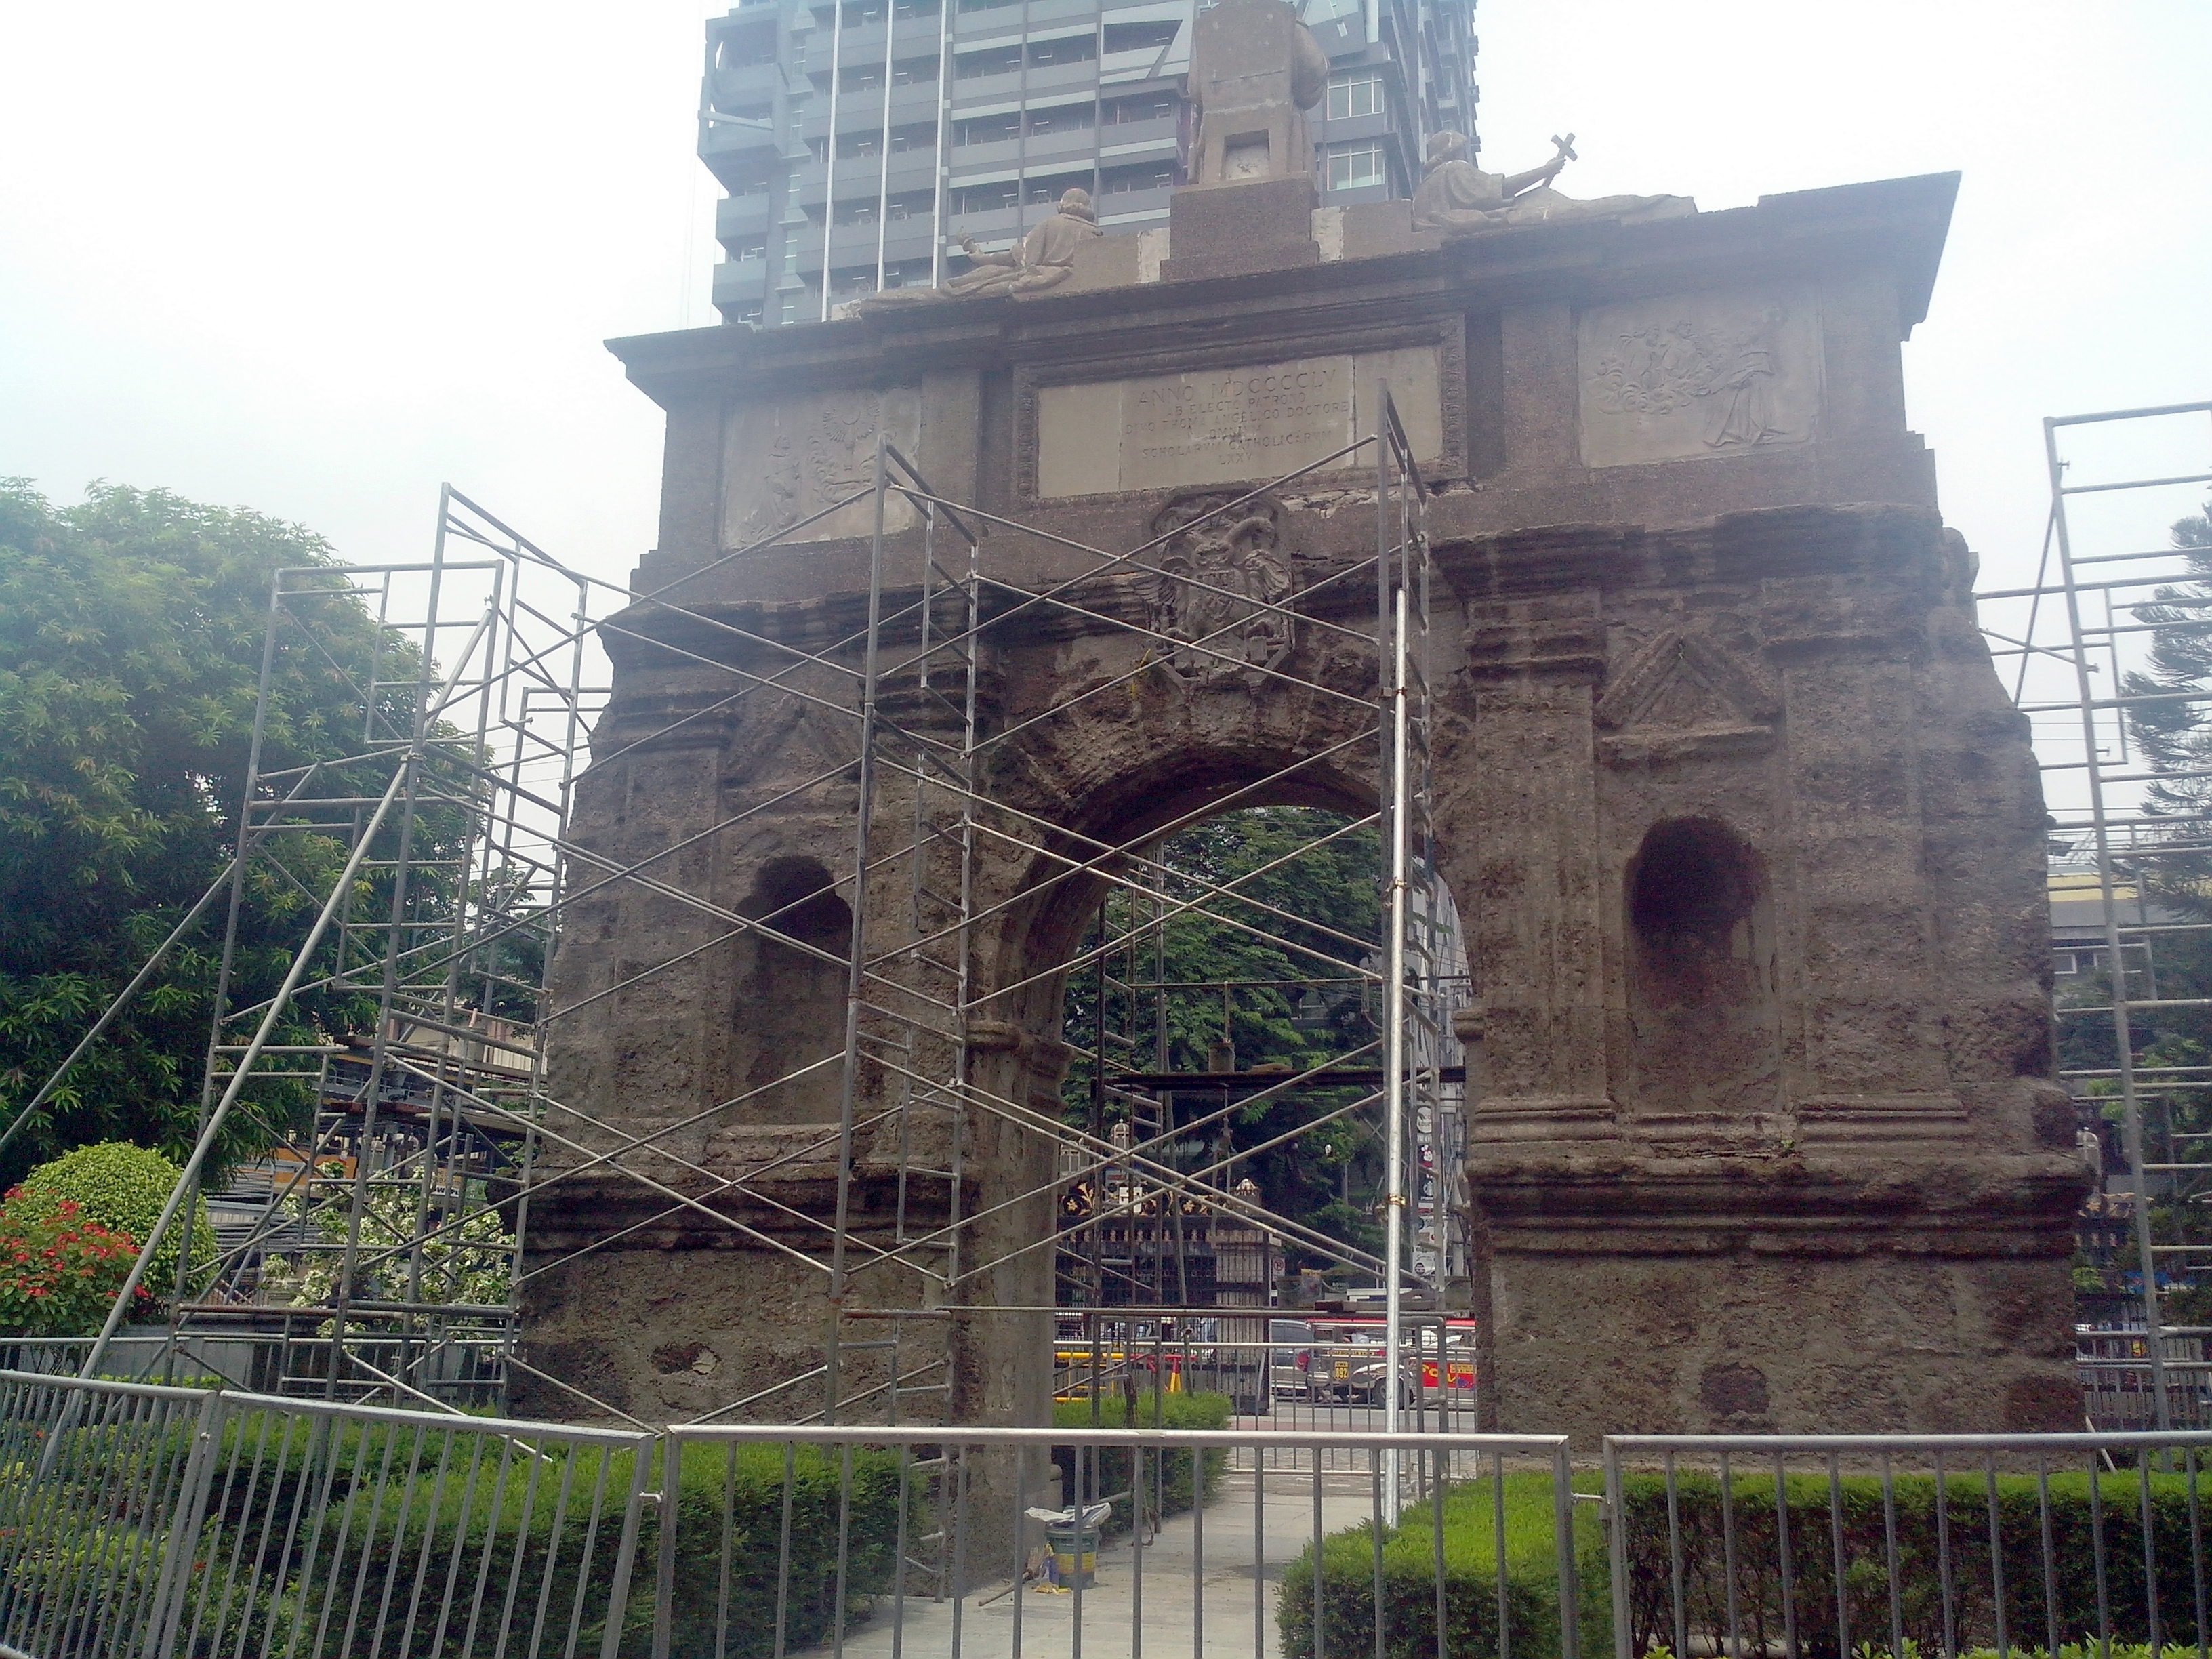 UST Arch of the Centuries renovation 2 2016.jpg English: The UST Arch of the Centuries was cleaned as part of renovations which commenced sometime in